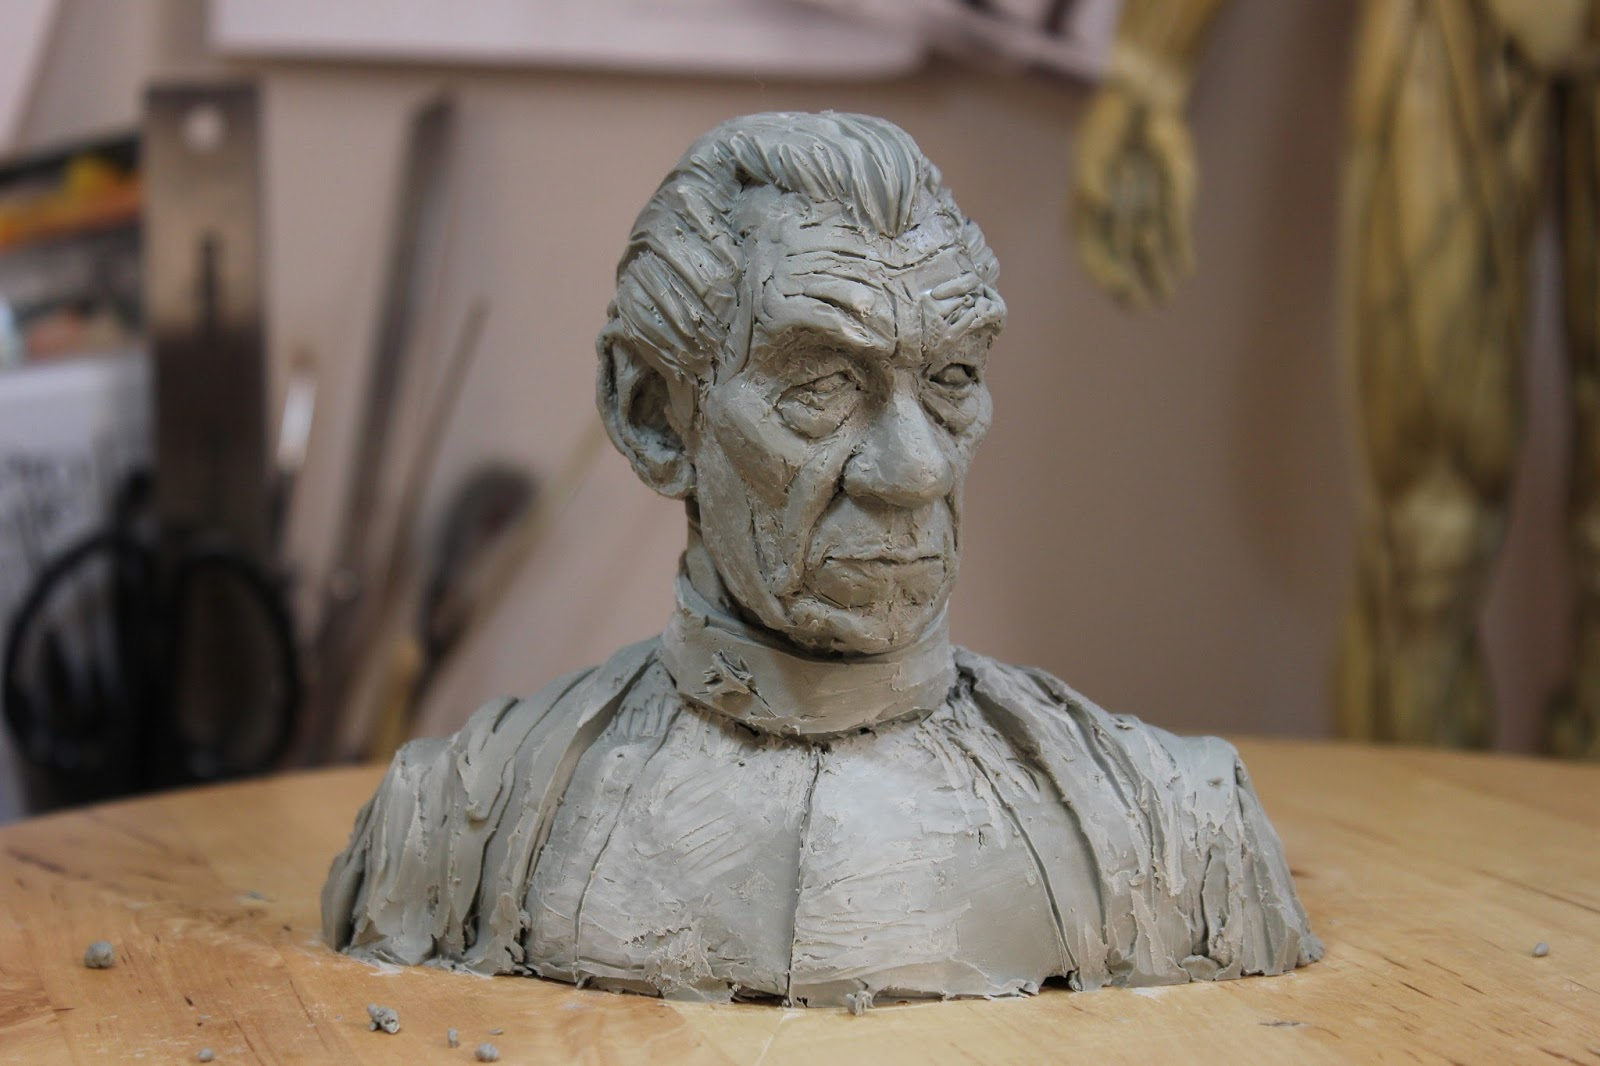 Paul's sculpture blog: New silicone rubber